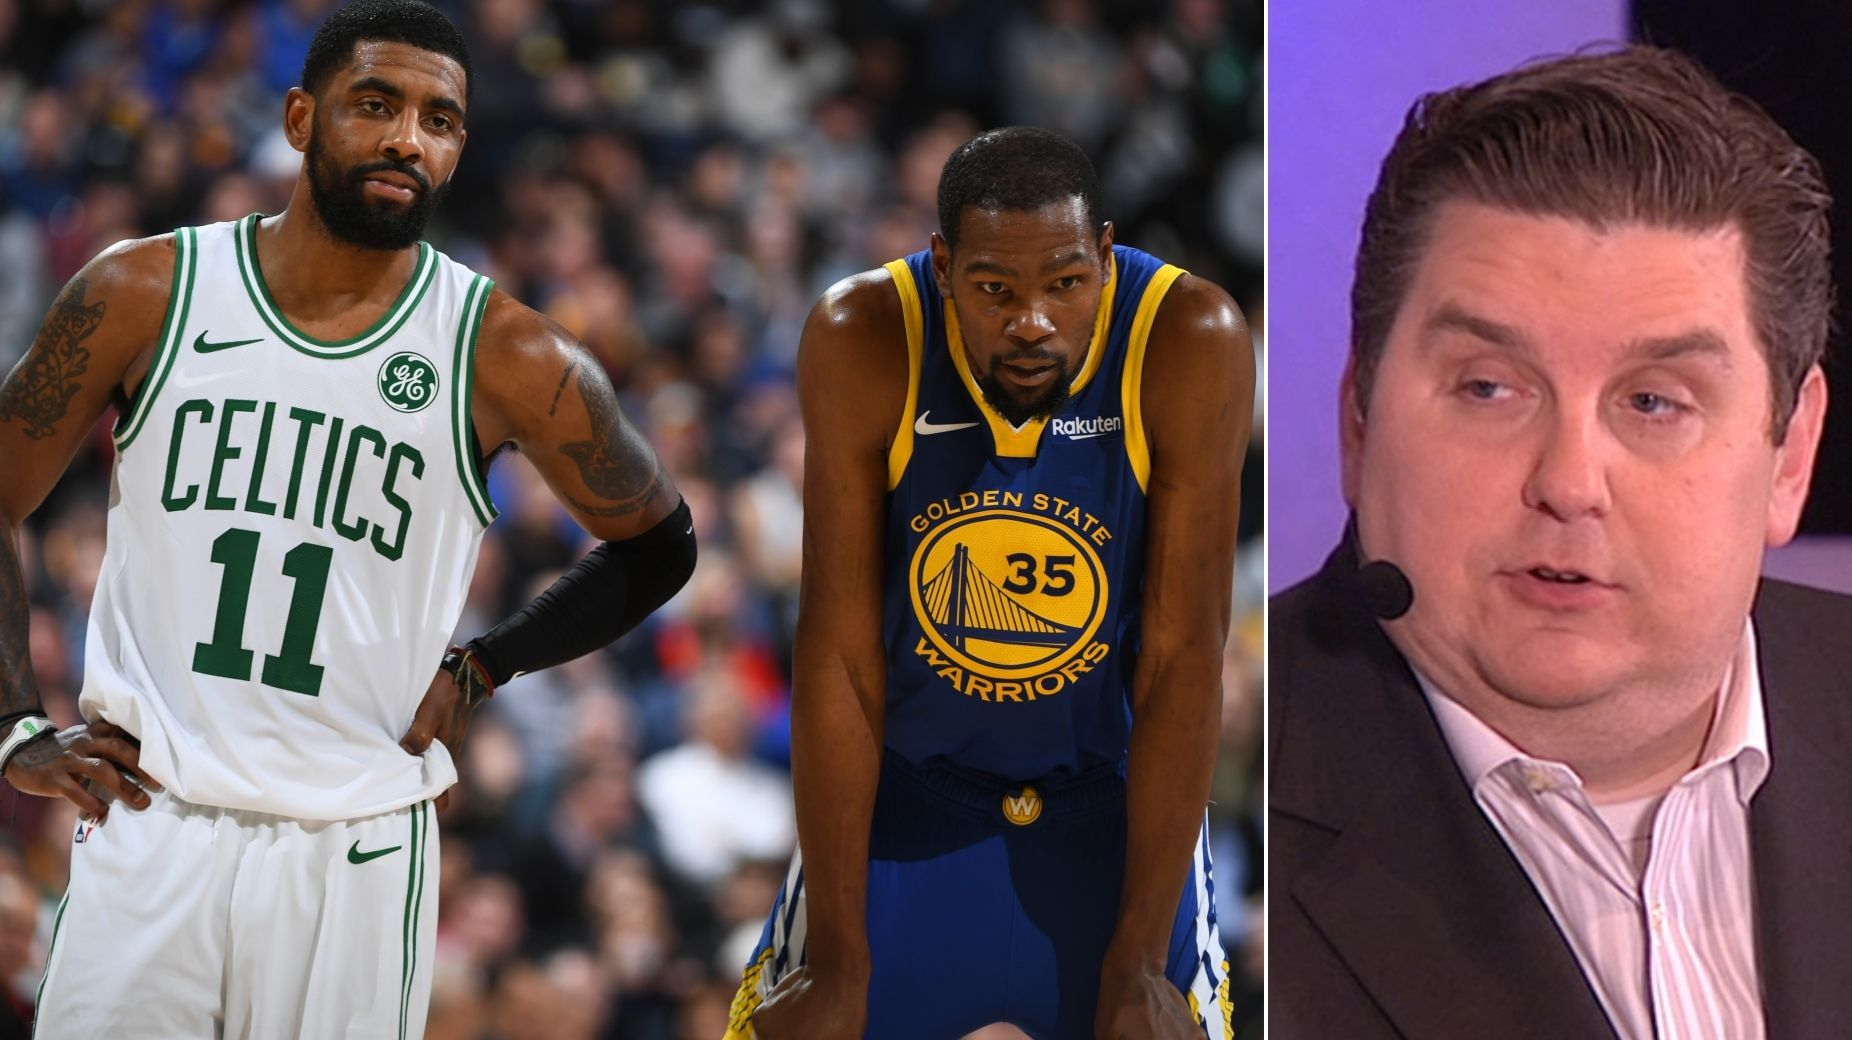 Sources: NBA looks to move up start of FA talks